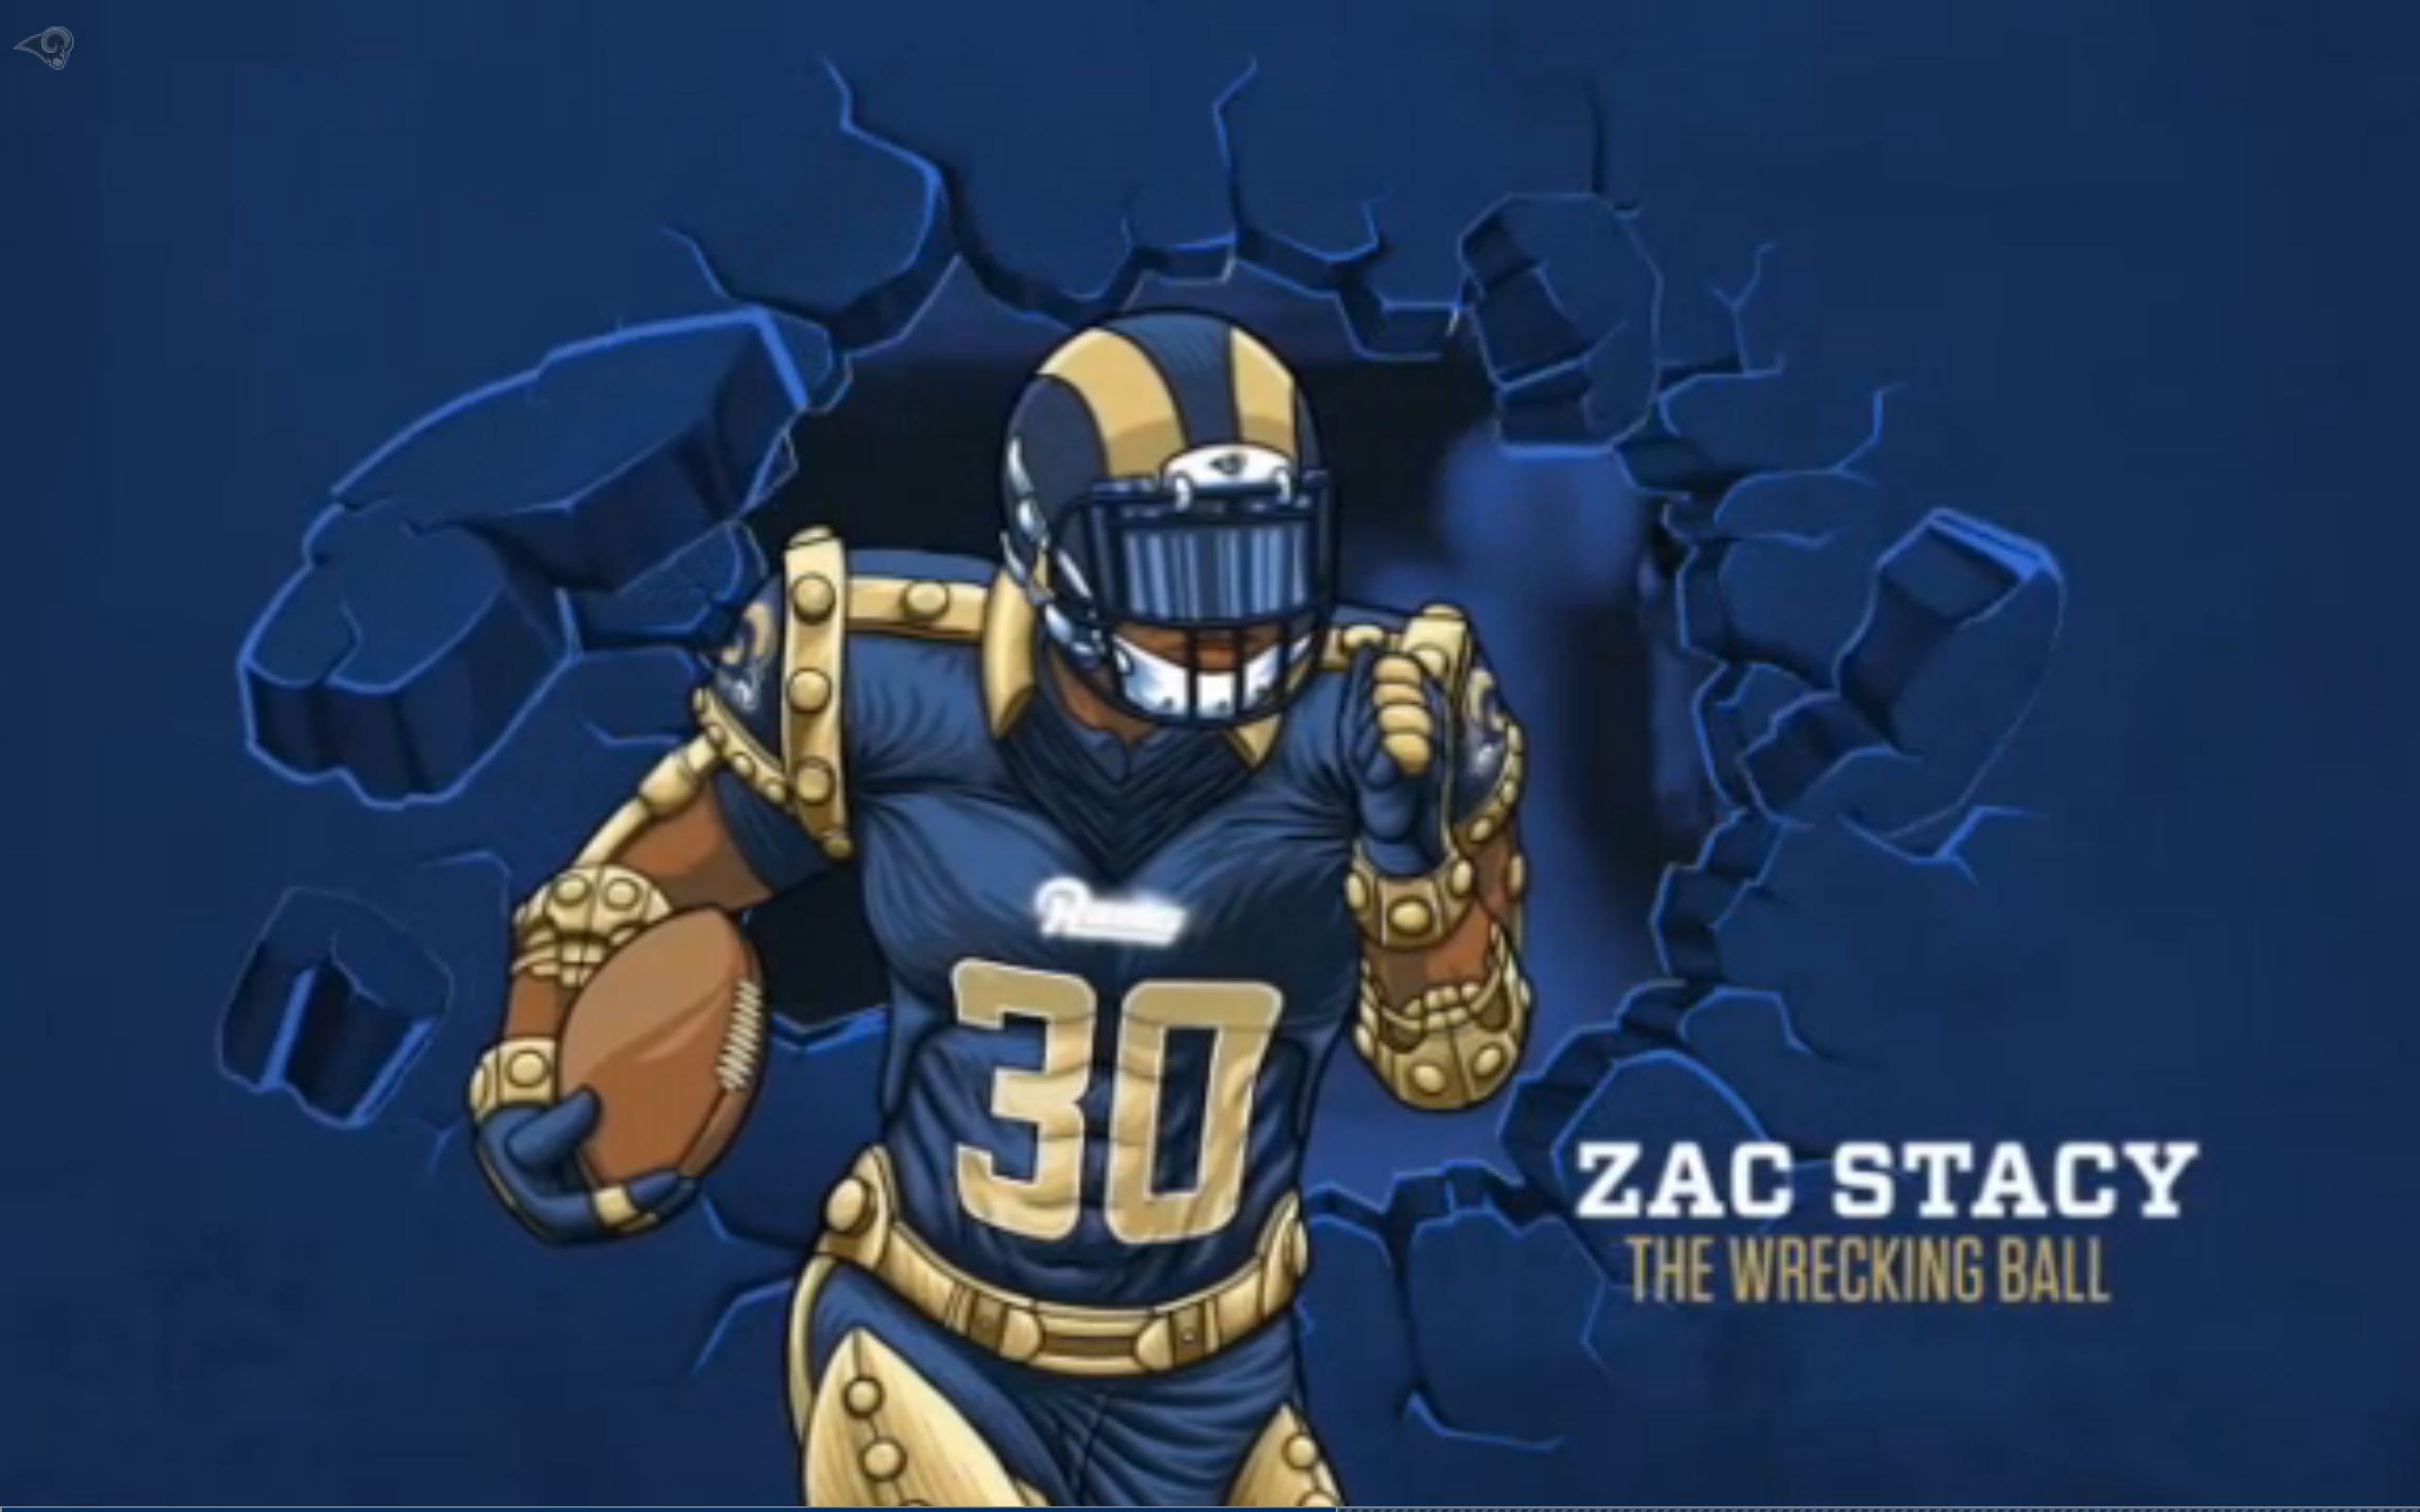 zac stacy jersey